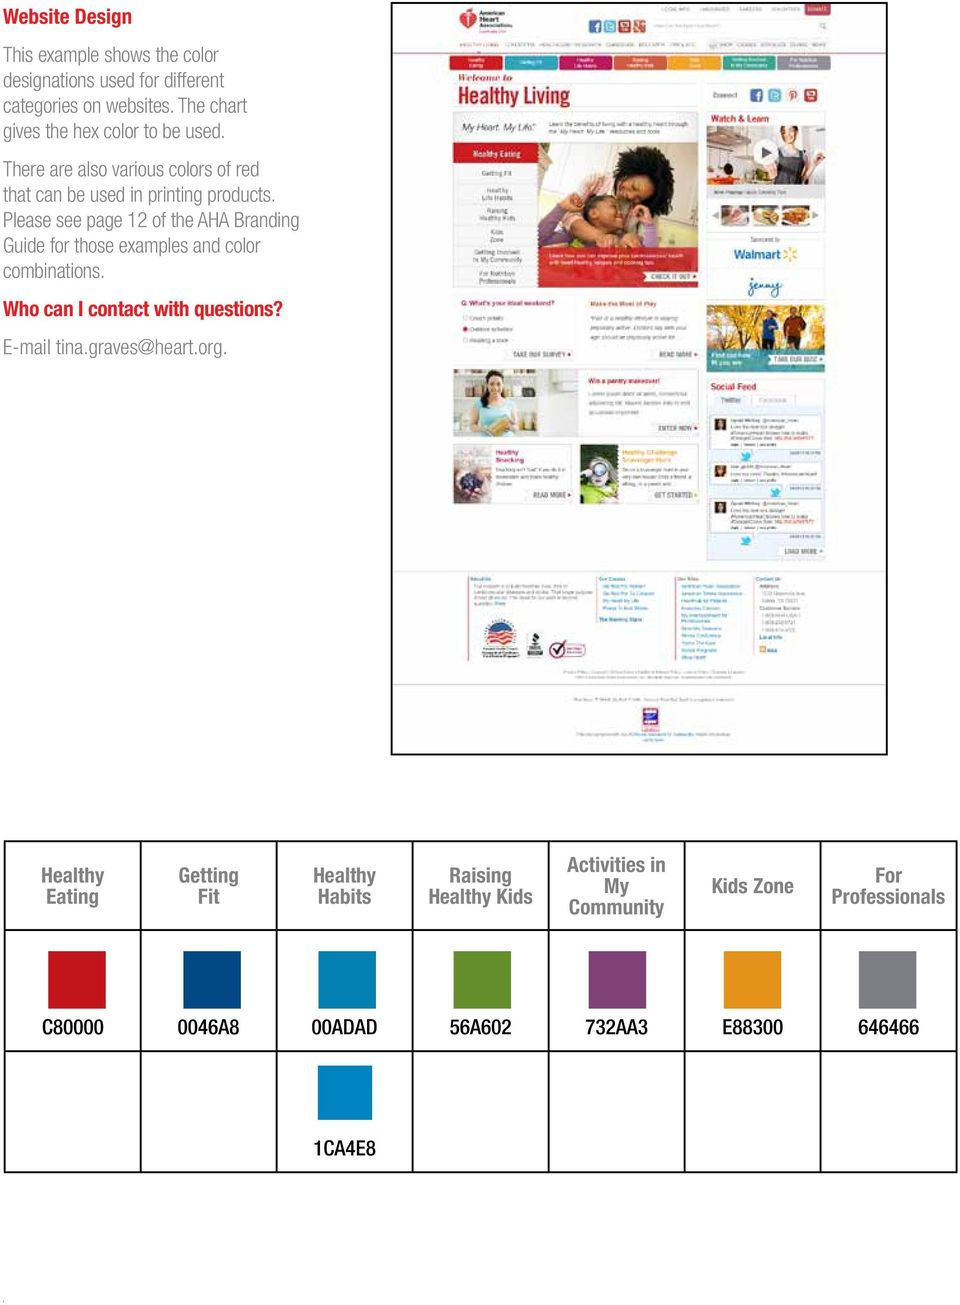 Please see page 12 of the AHA Branding Guide for those examples and color combinations. E-mail tina.graves@heart.org.